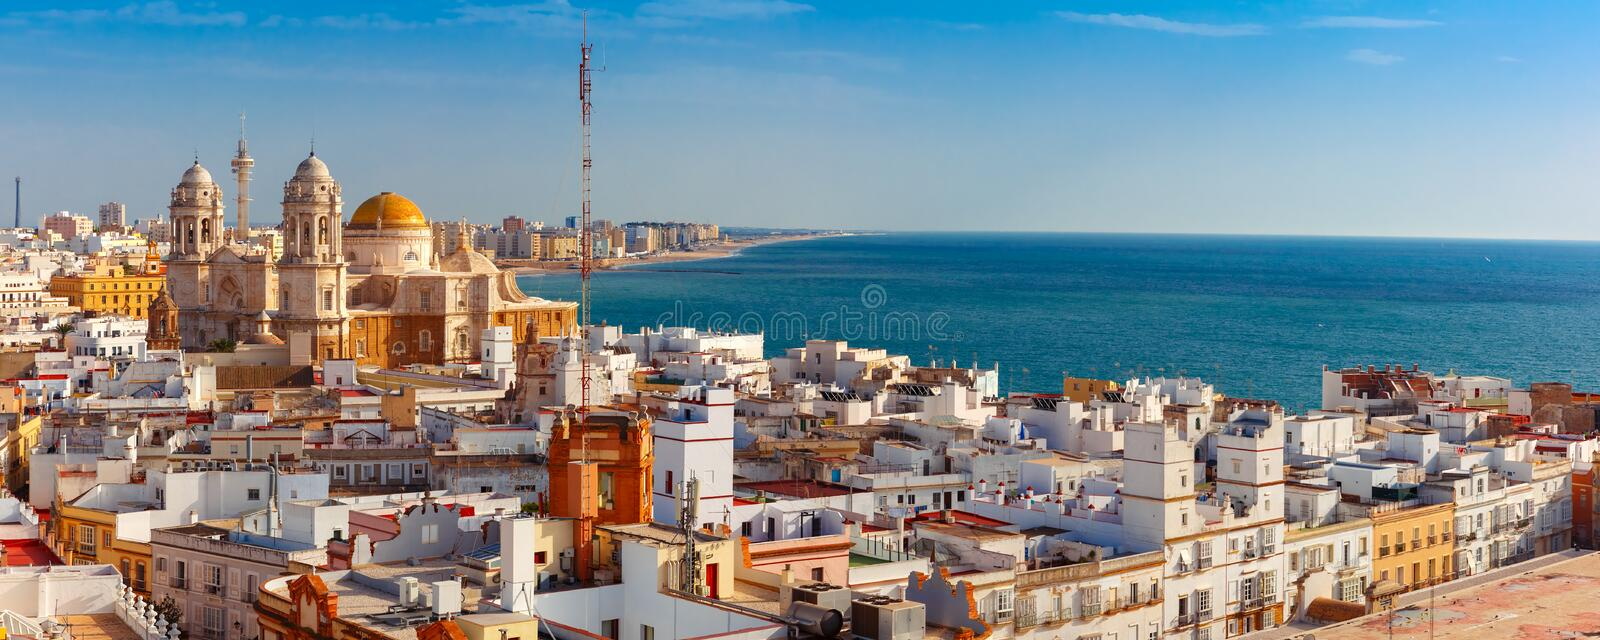 Rooftops and Cathedral in Cadiz, Andalusia, Spain stock photo